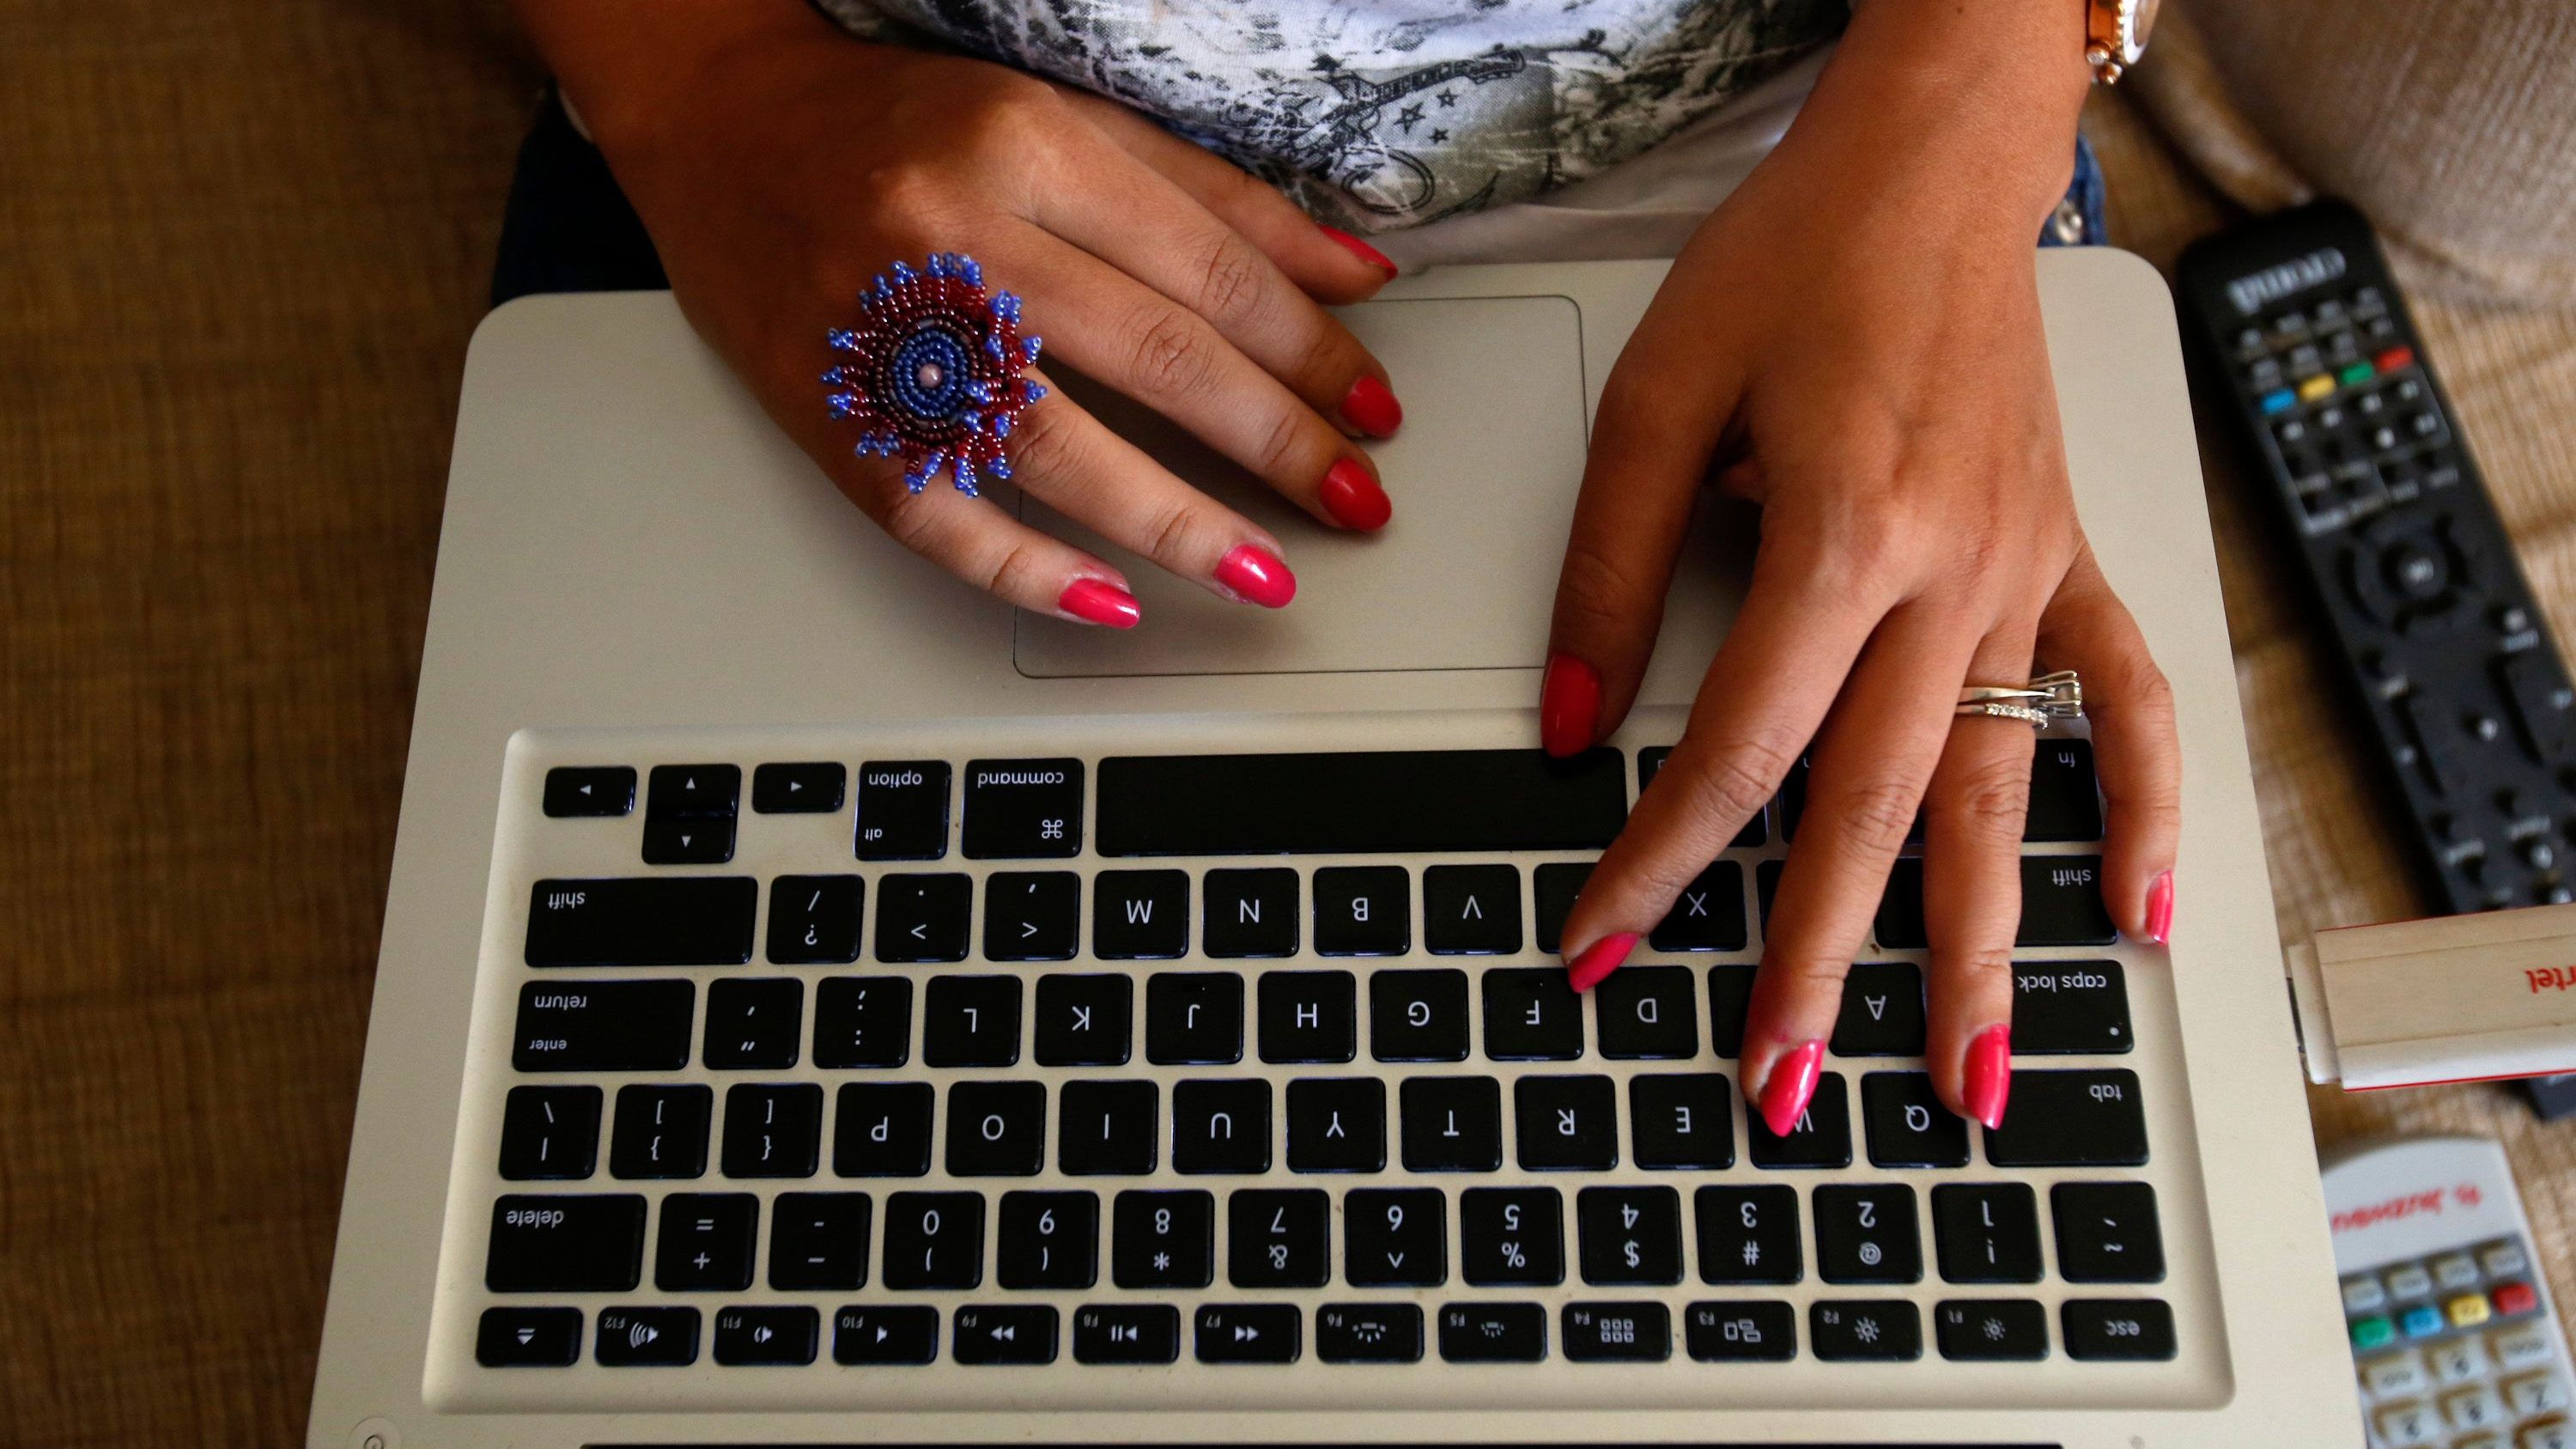 The hands of Malini Agarwal, blogger-in-chief of missmalini.com, are pictured as she blogs from her living room in Mumbai